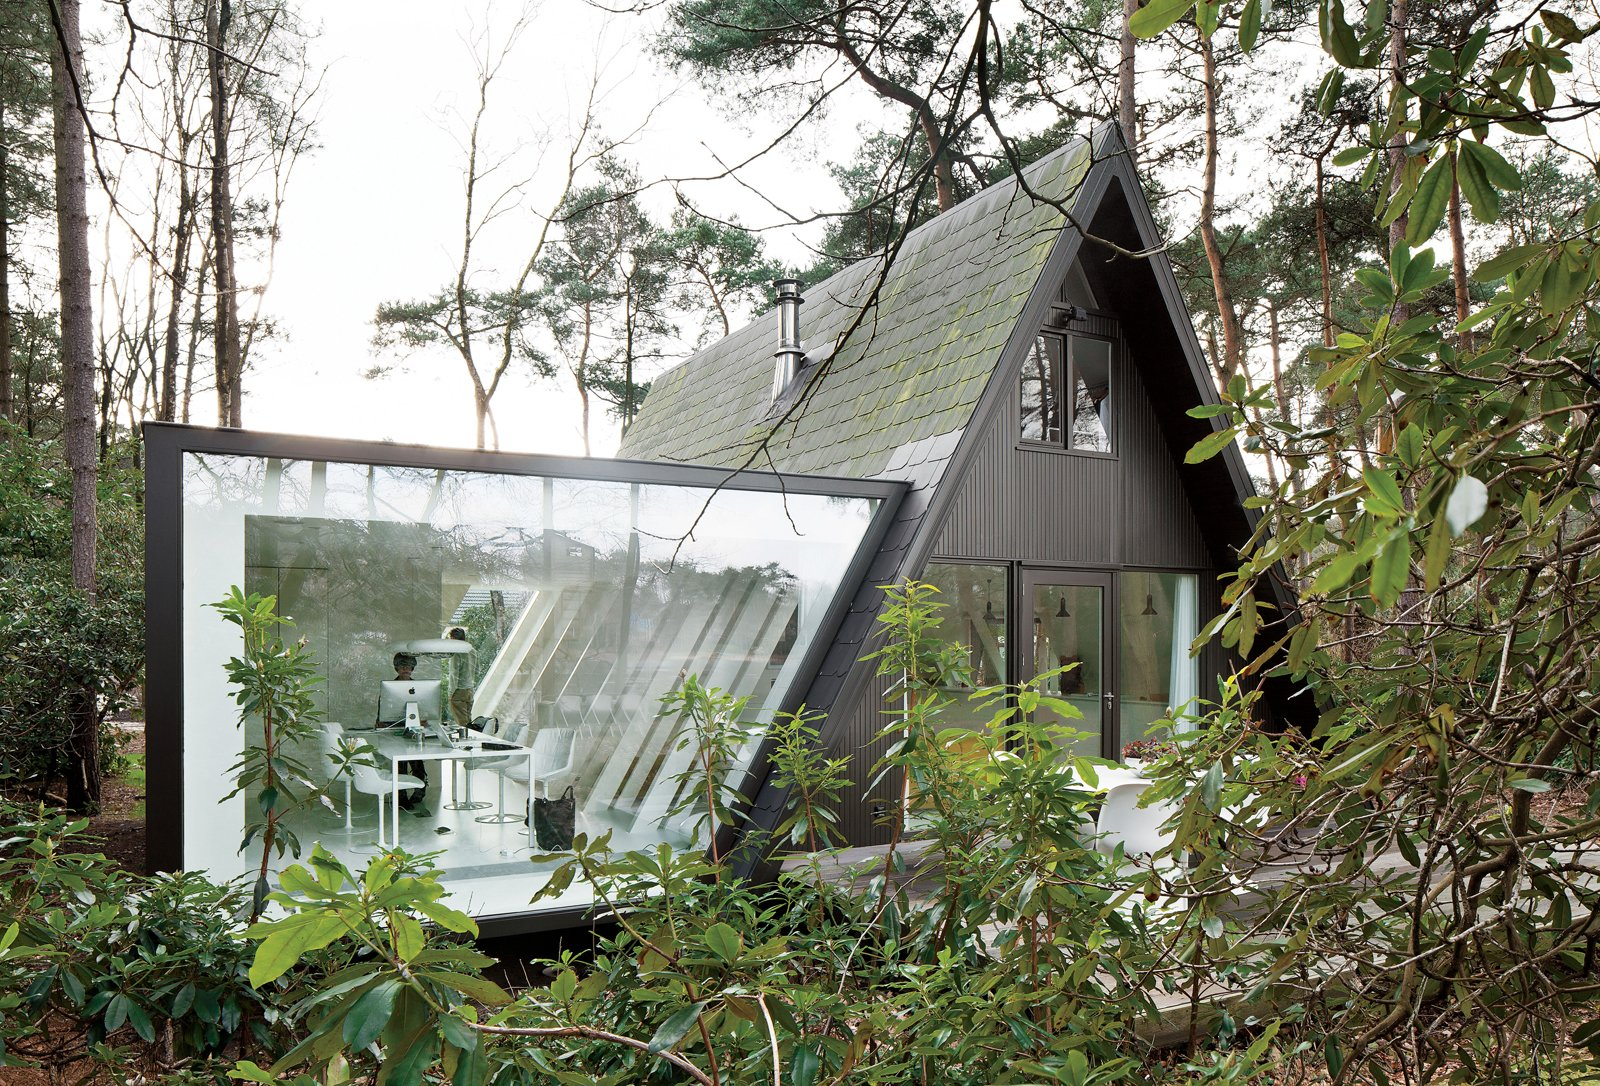 Photo 1 of 5 in This Minimal Addition Looks Magical in the Belgian Forest